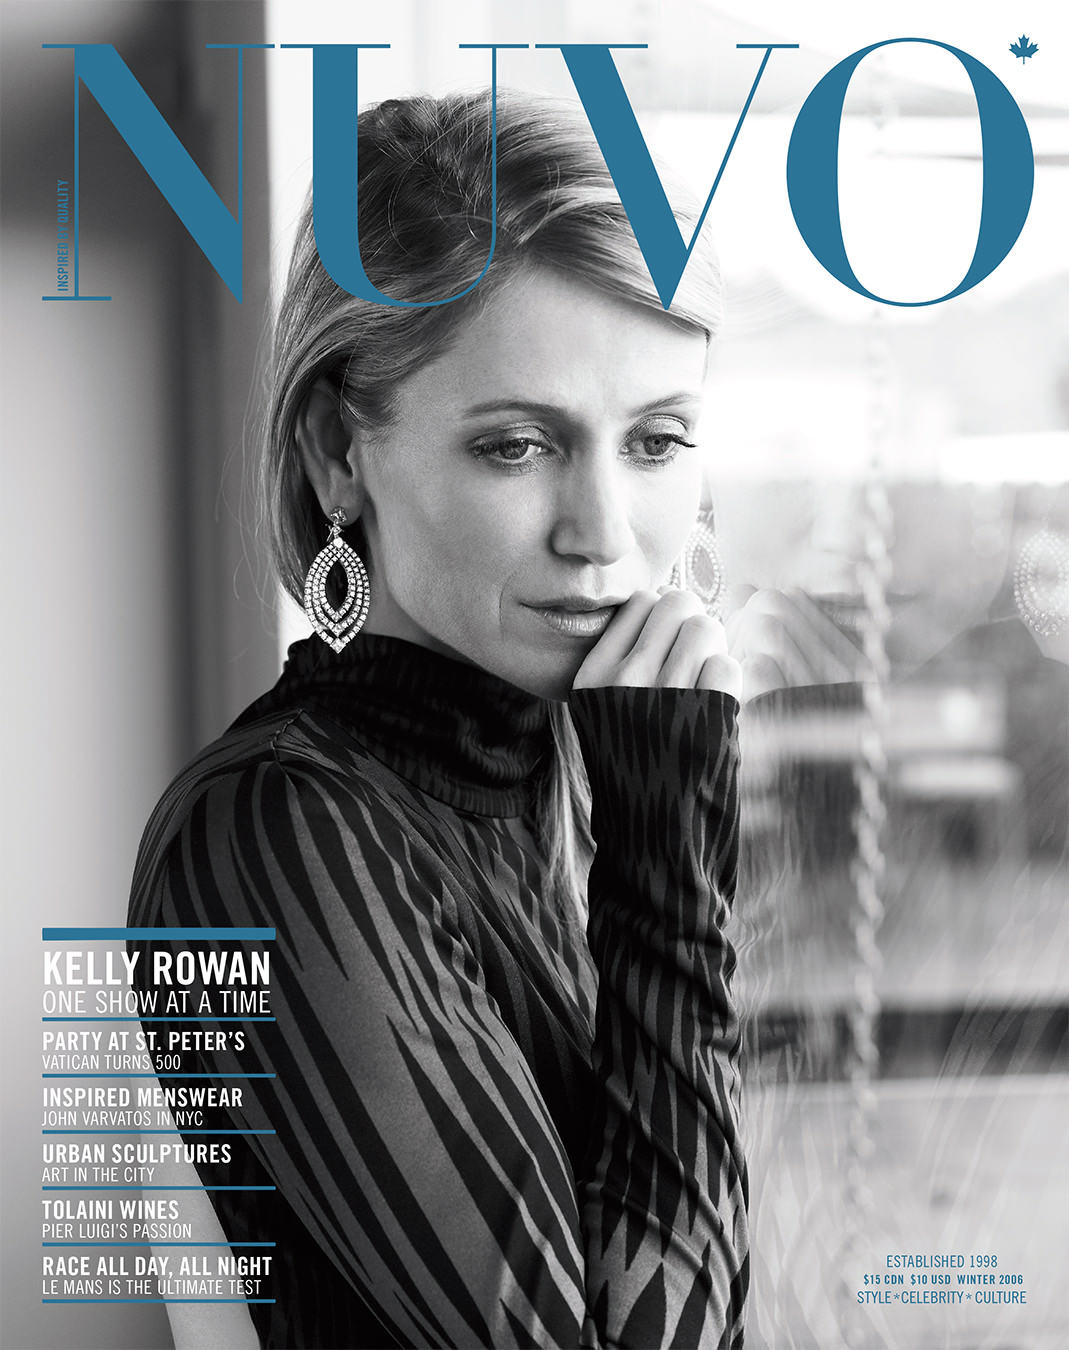 NUVO Magazine Winter 2006 Cover featuring Kelly Rowan